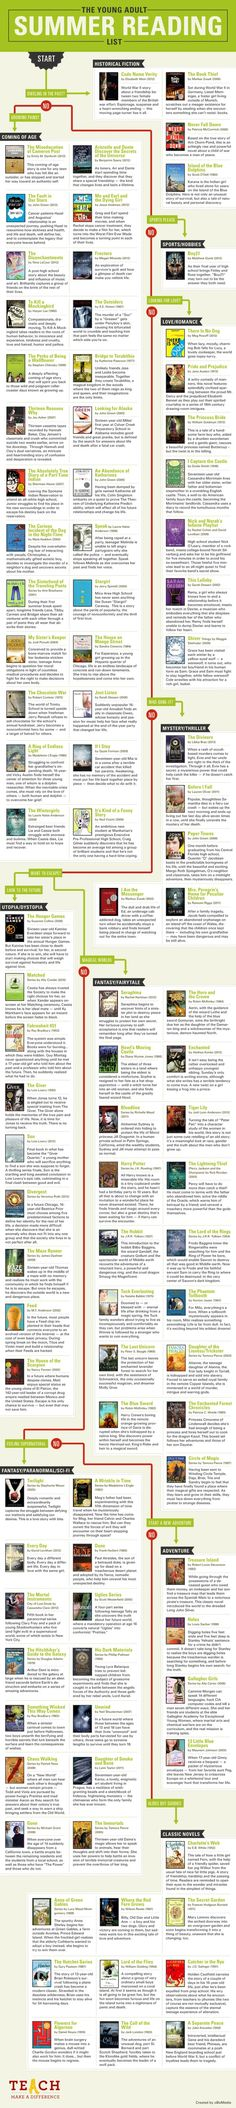 The Summer Reading Flowchart: Young Adult Books! [Infographic]